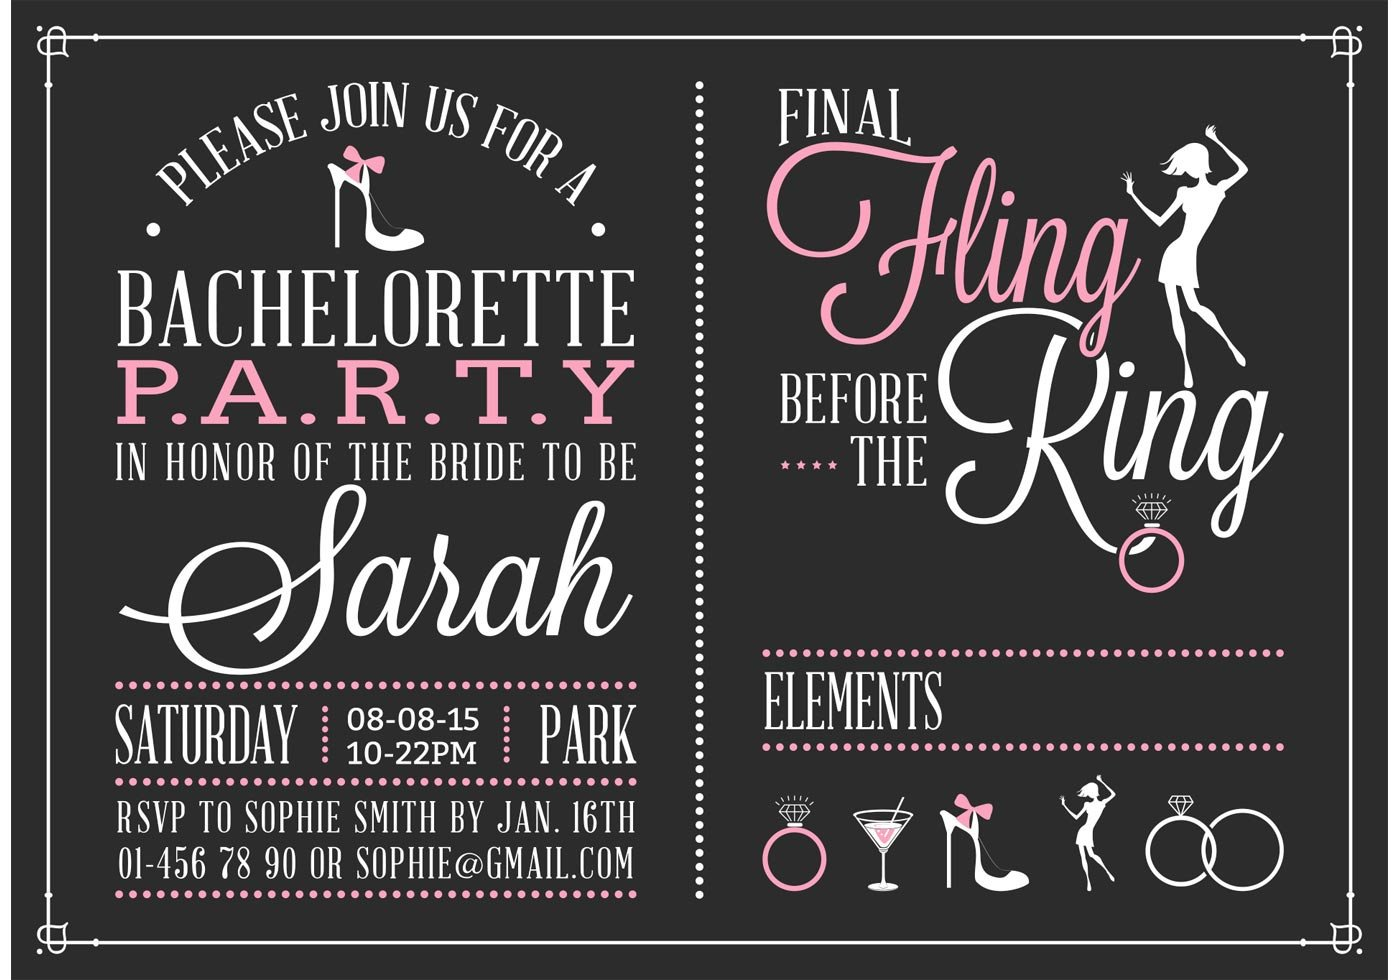 Bachelorette Party Invitations Template Free Bachelorette Party Invitation Vector Download Free